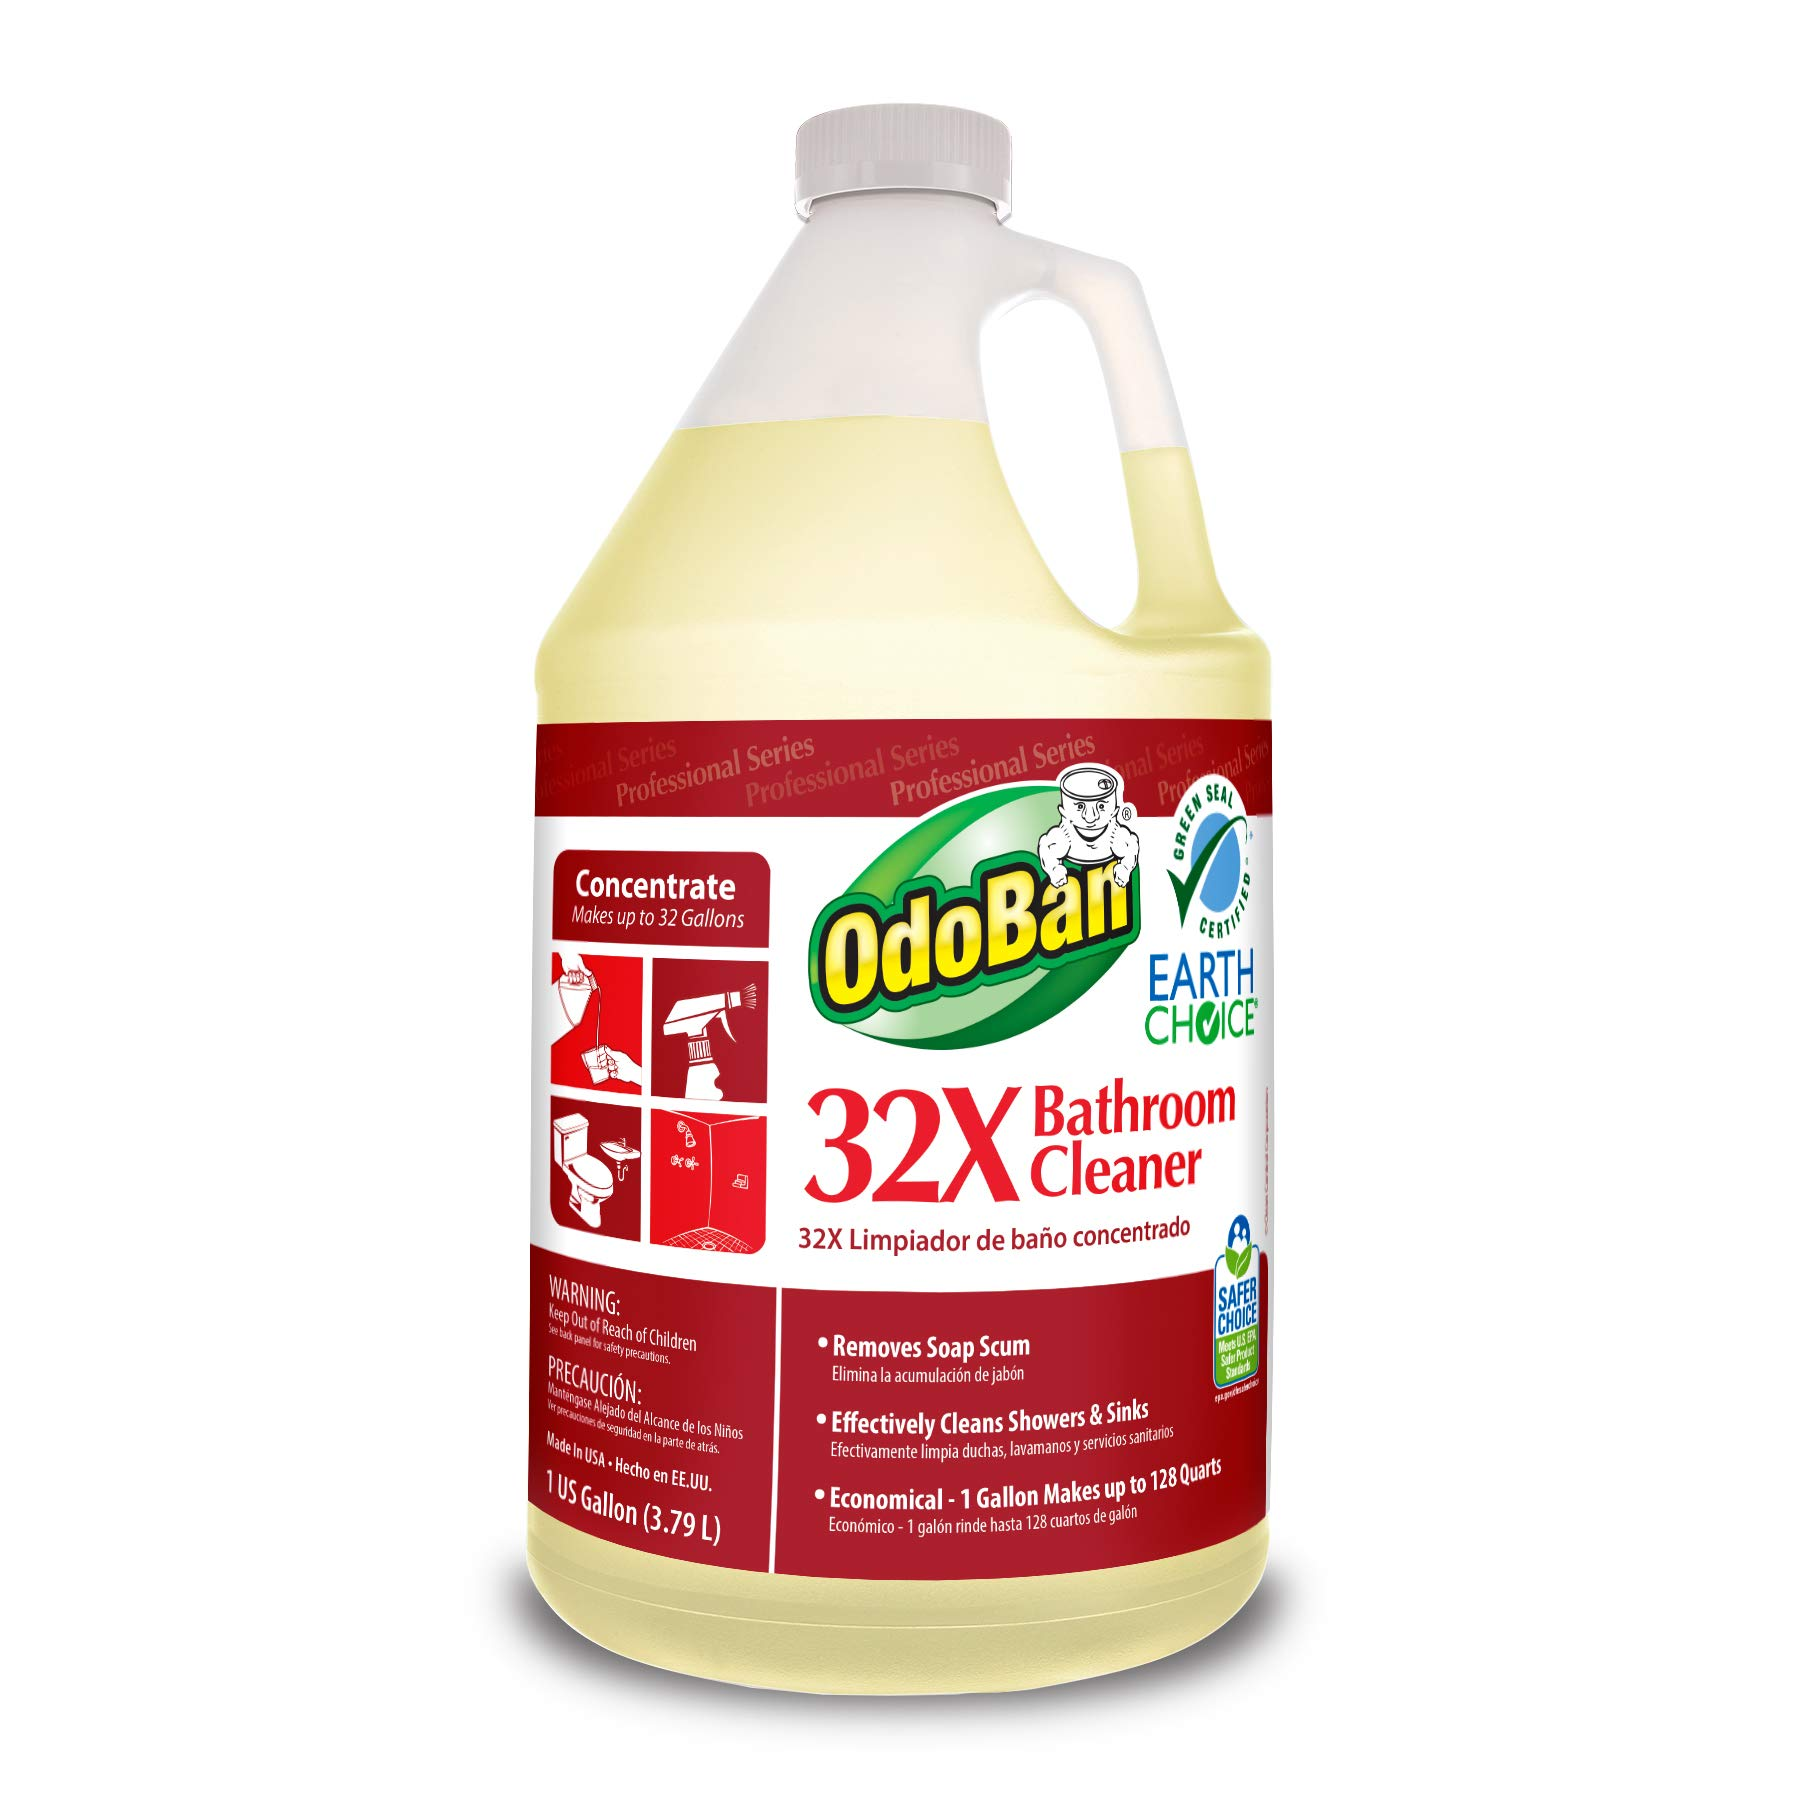 OdoBan Professional Cleaning 32X Bathroom Cleaner, 1 Gallon Concentrate by OdoBan